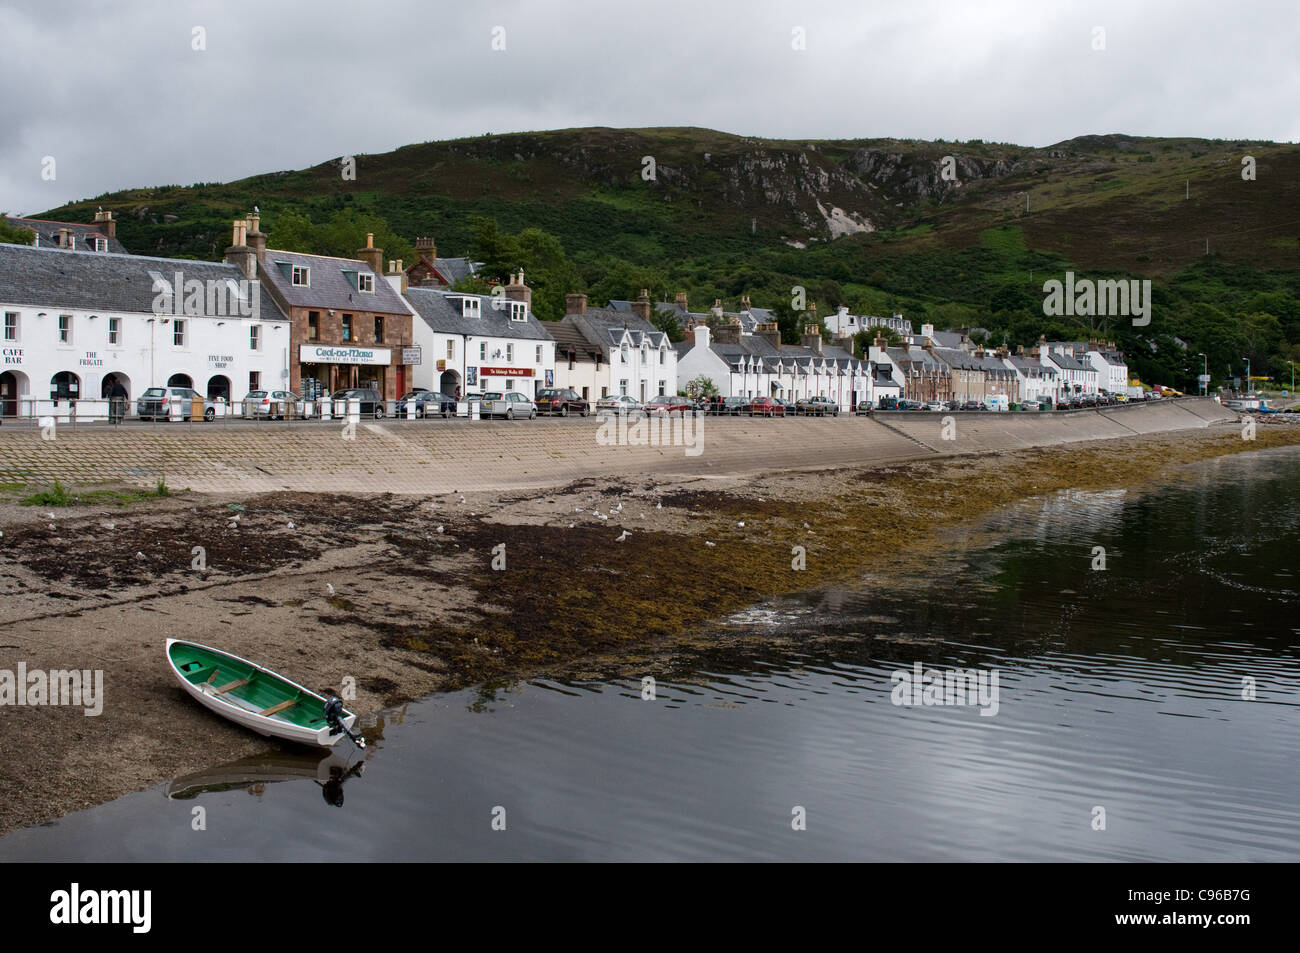 The town of Ullapool is on the shore of Lochbroom and is the port for ferries to Stornoway in the Western Isles. - Stock Image